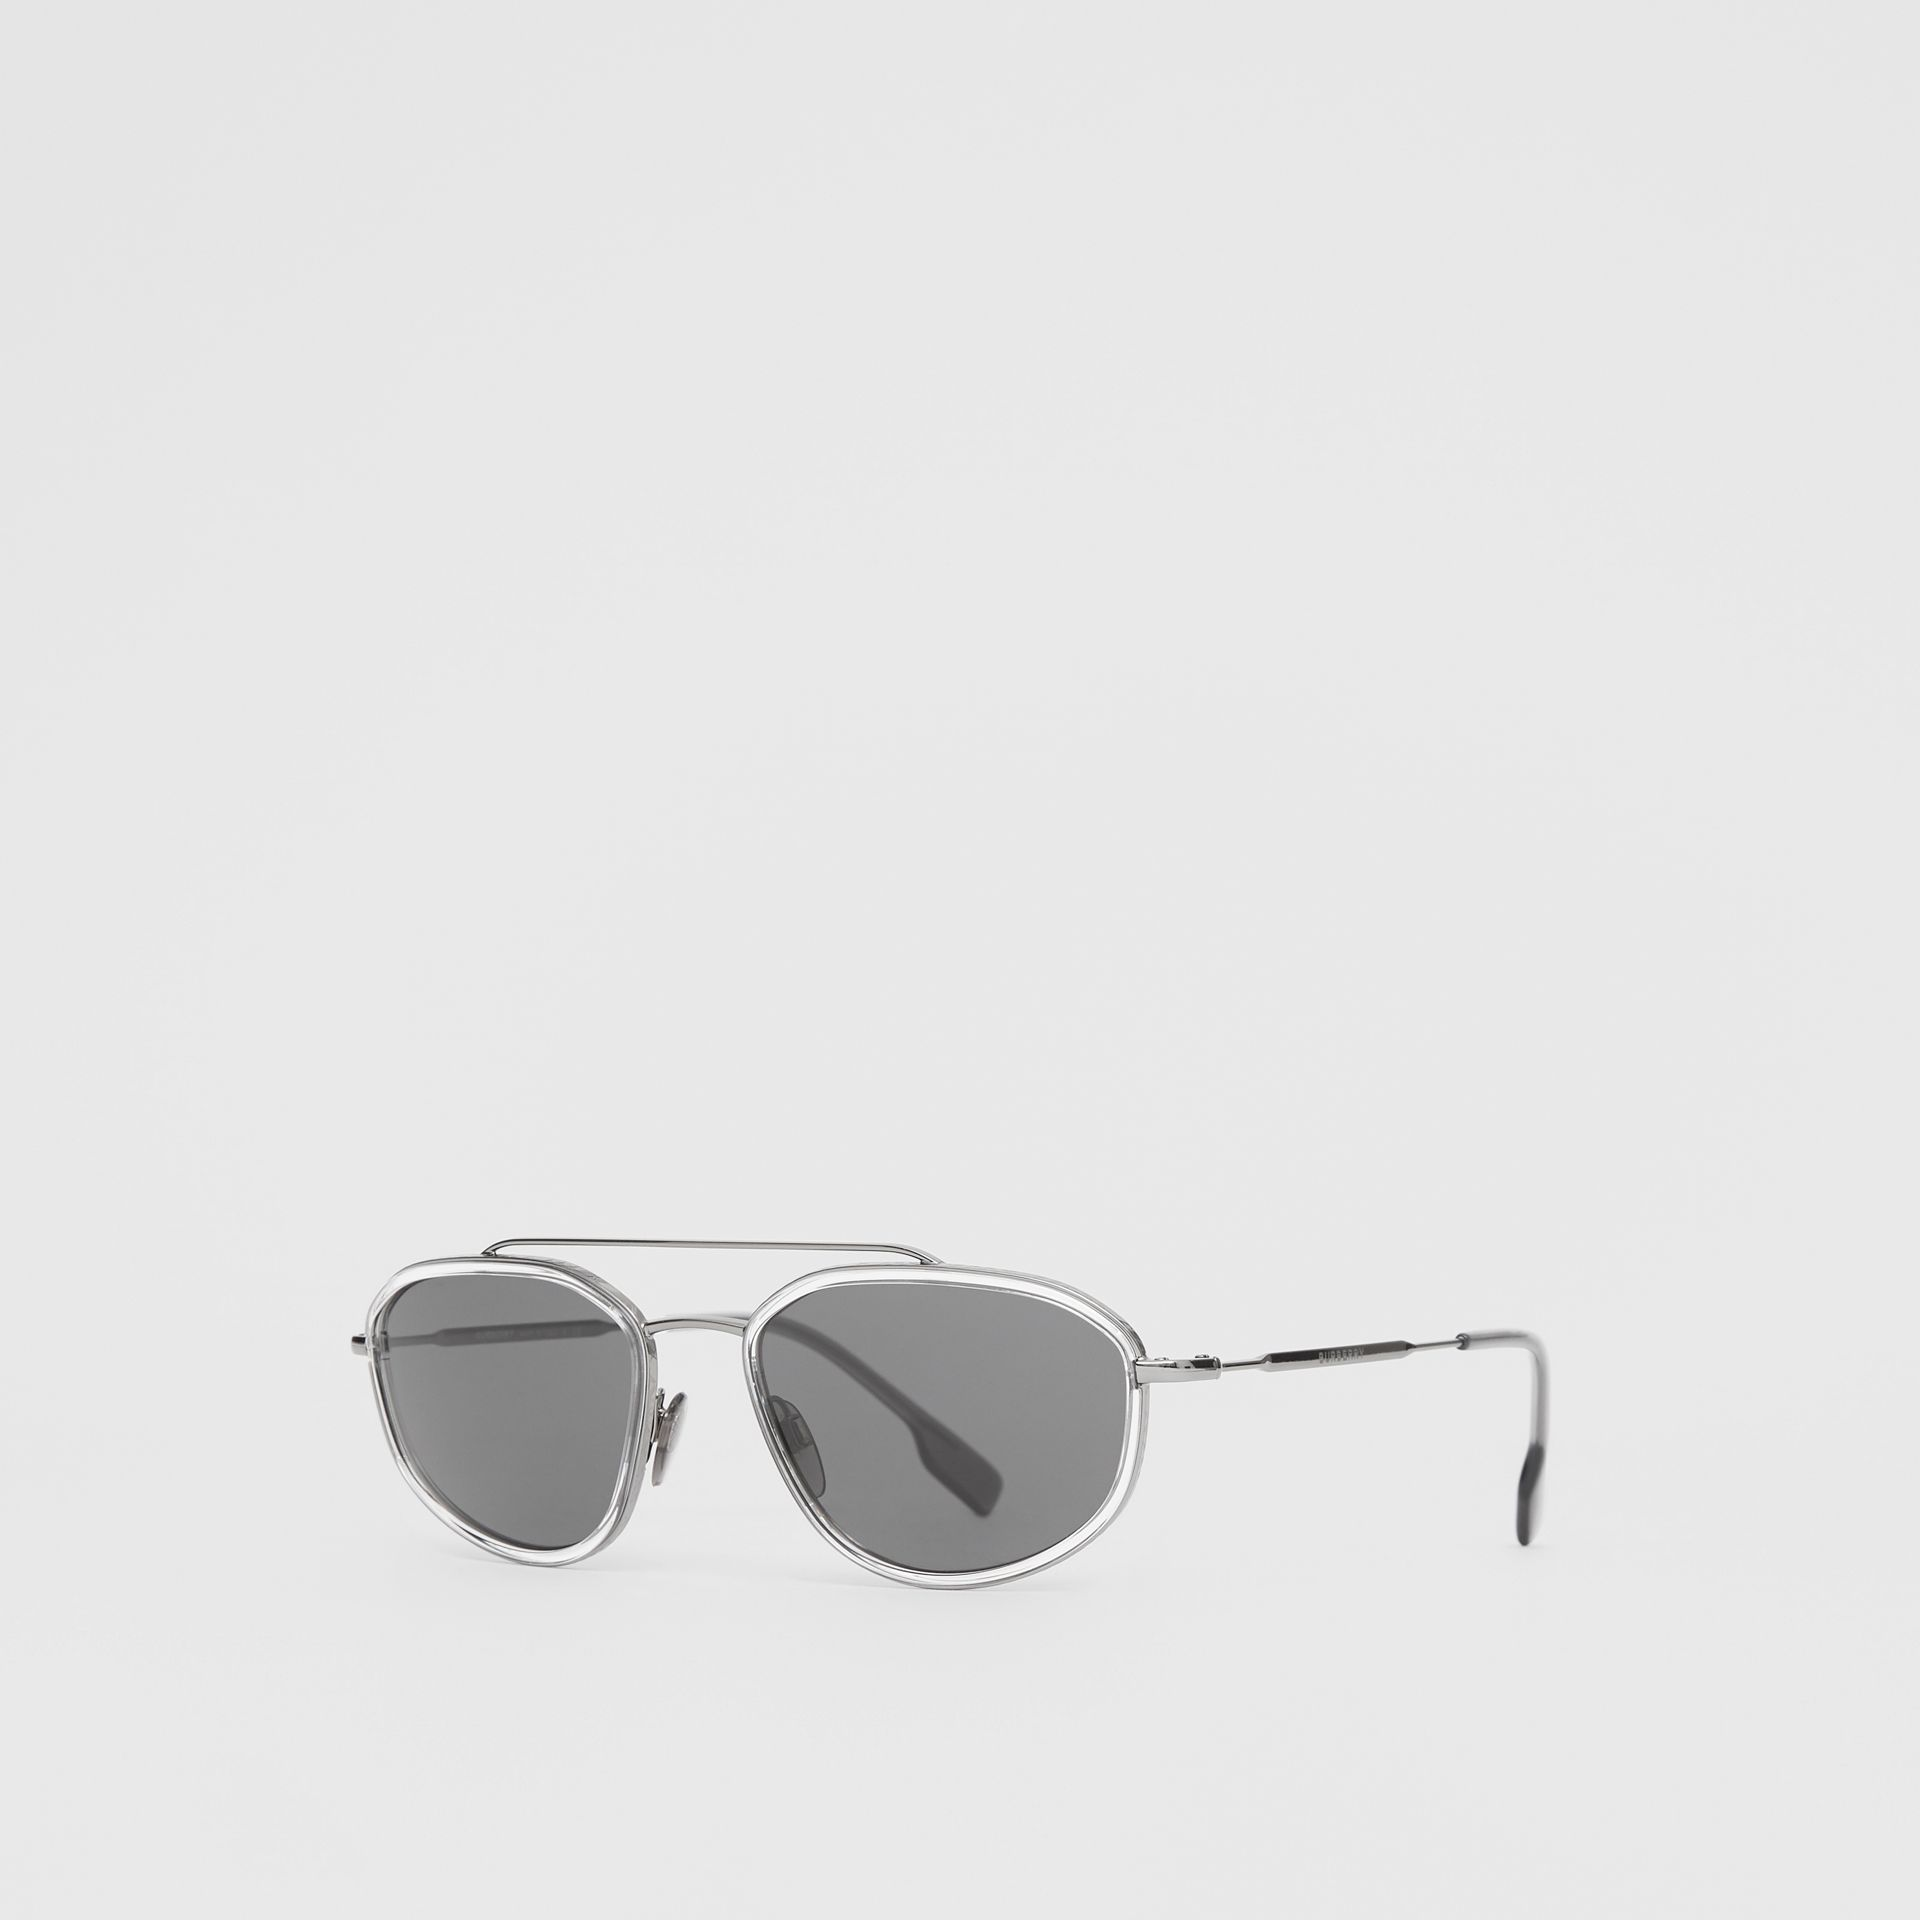 Geometric Navigator Sunglasses in Gunmetal Grey - Men | Burberry United States - gallery image 4